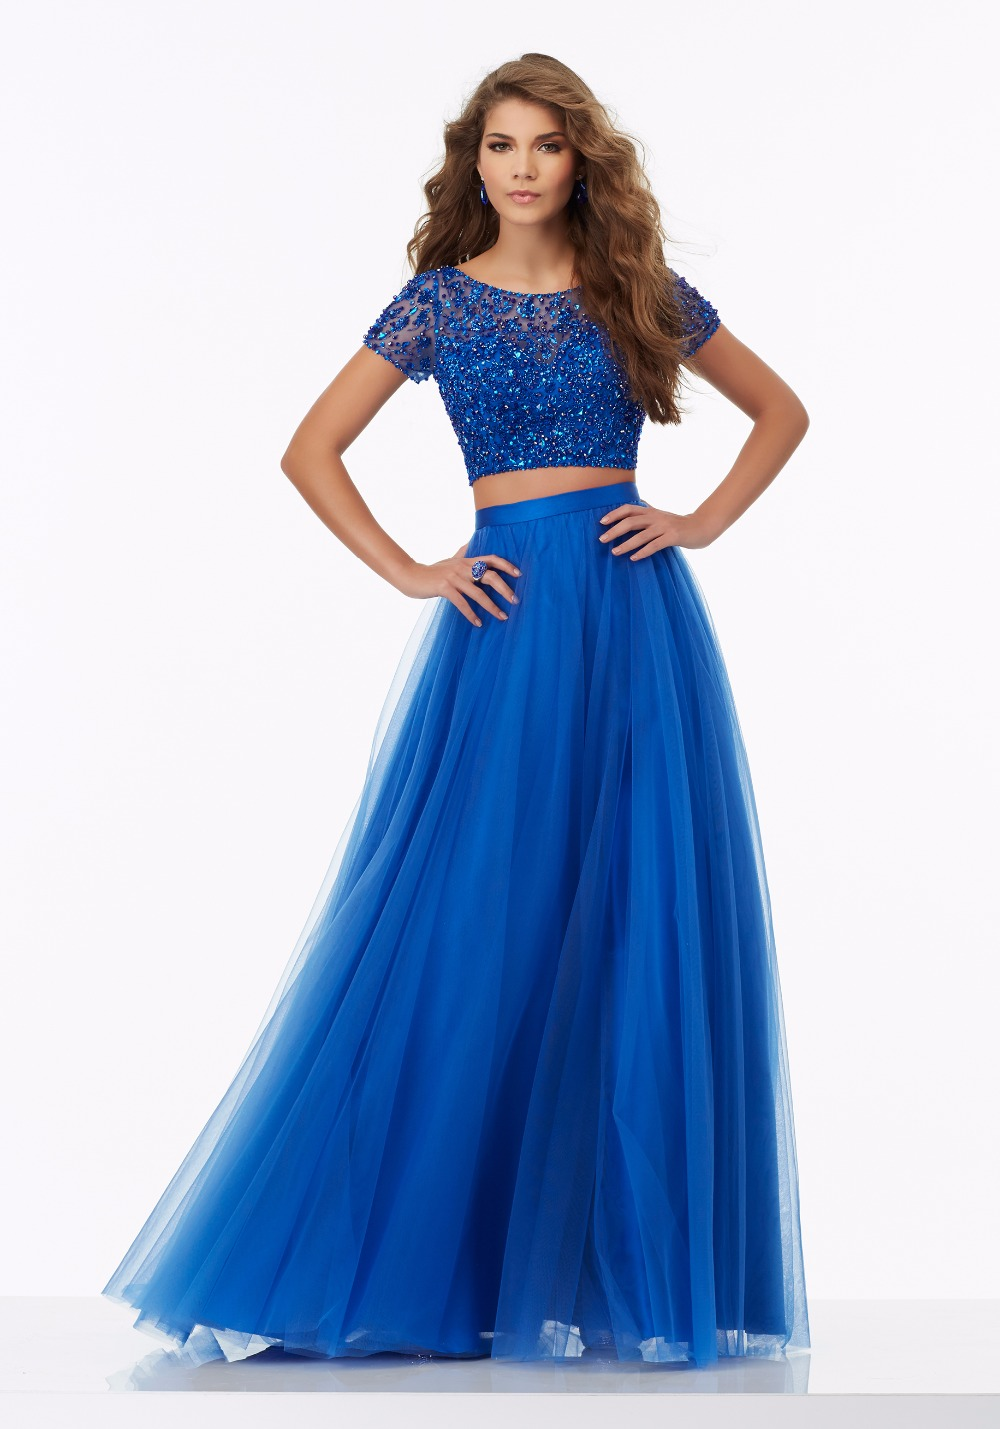 Royal Blue Cap Sleeves 2 Pieces Prom Dresses Long 2017 A